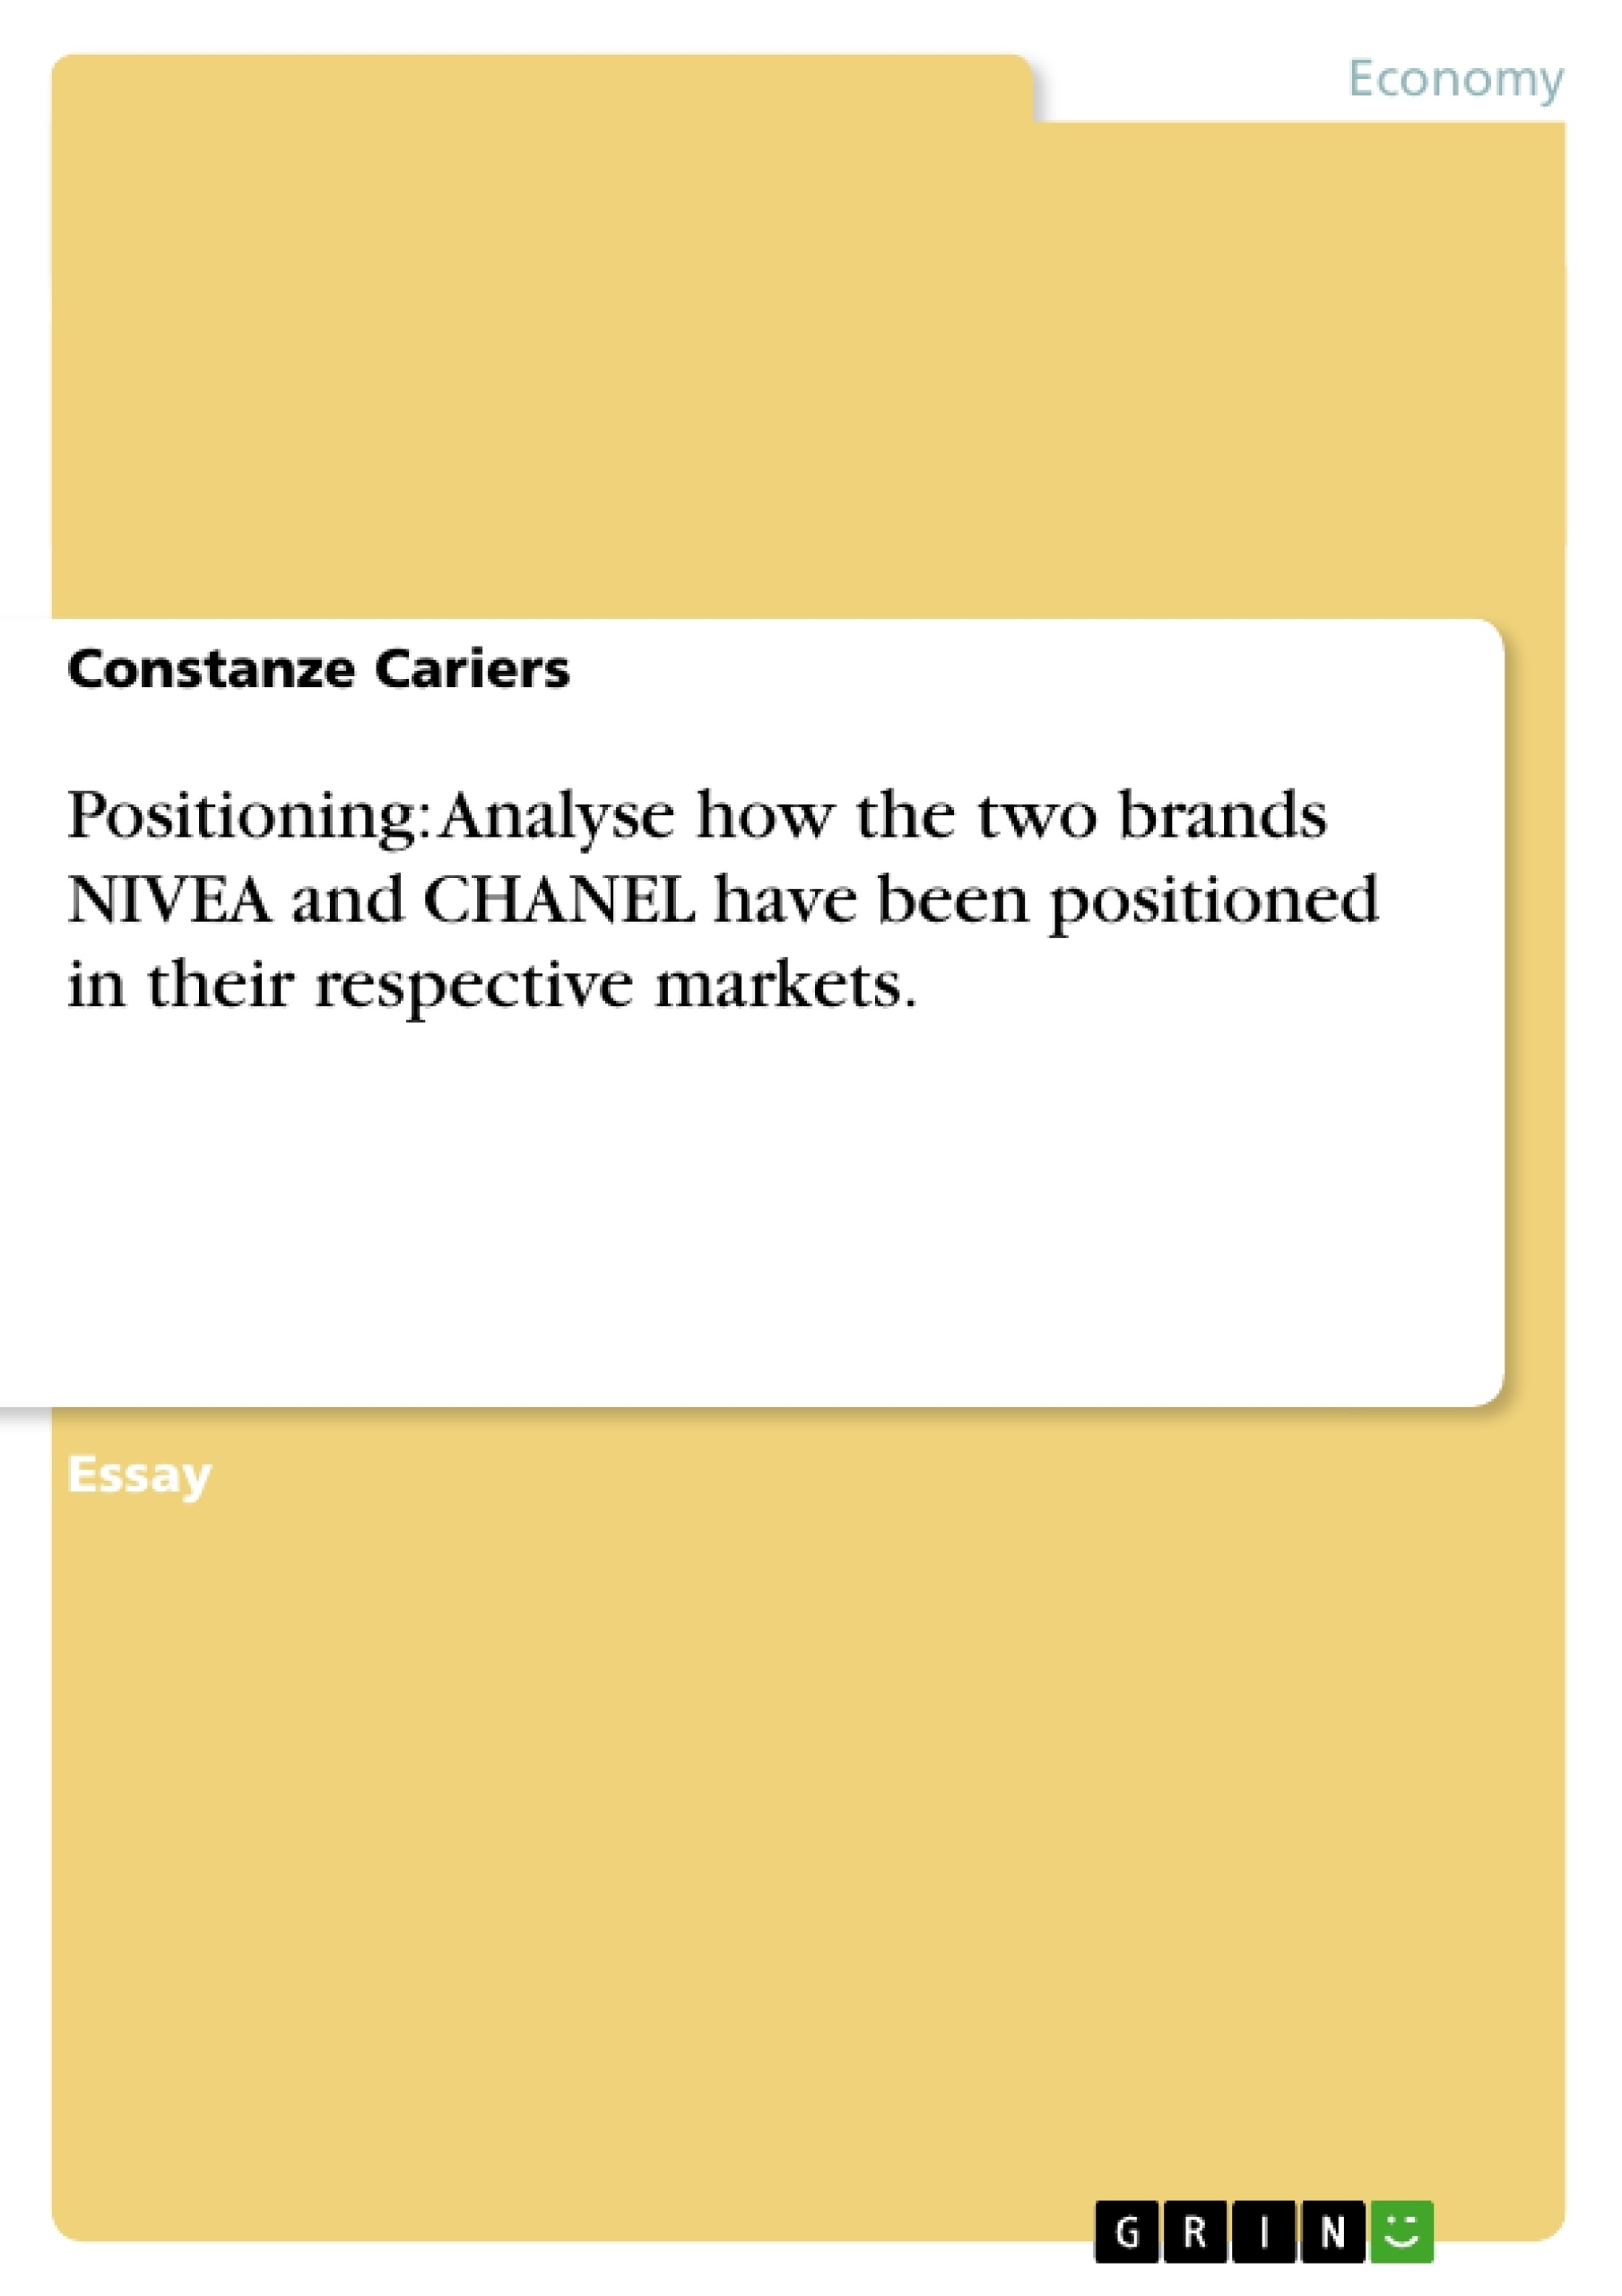 Title: Positioning: Analyse how the two brands NIVEA and CHANEL have been positioned in their respective markets.